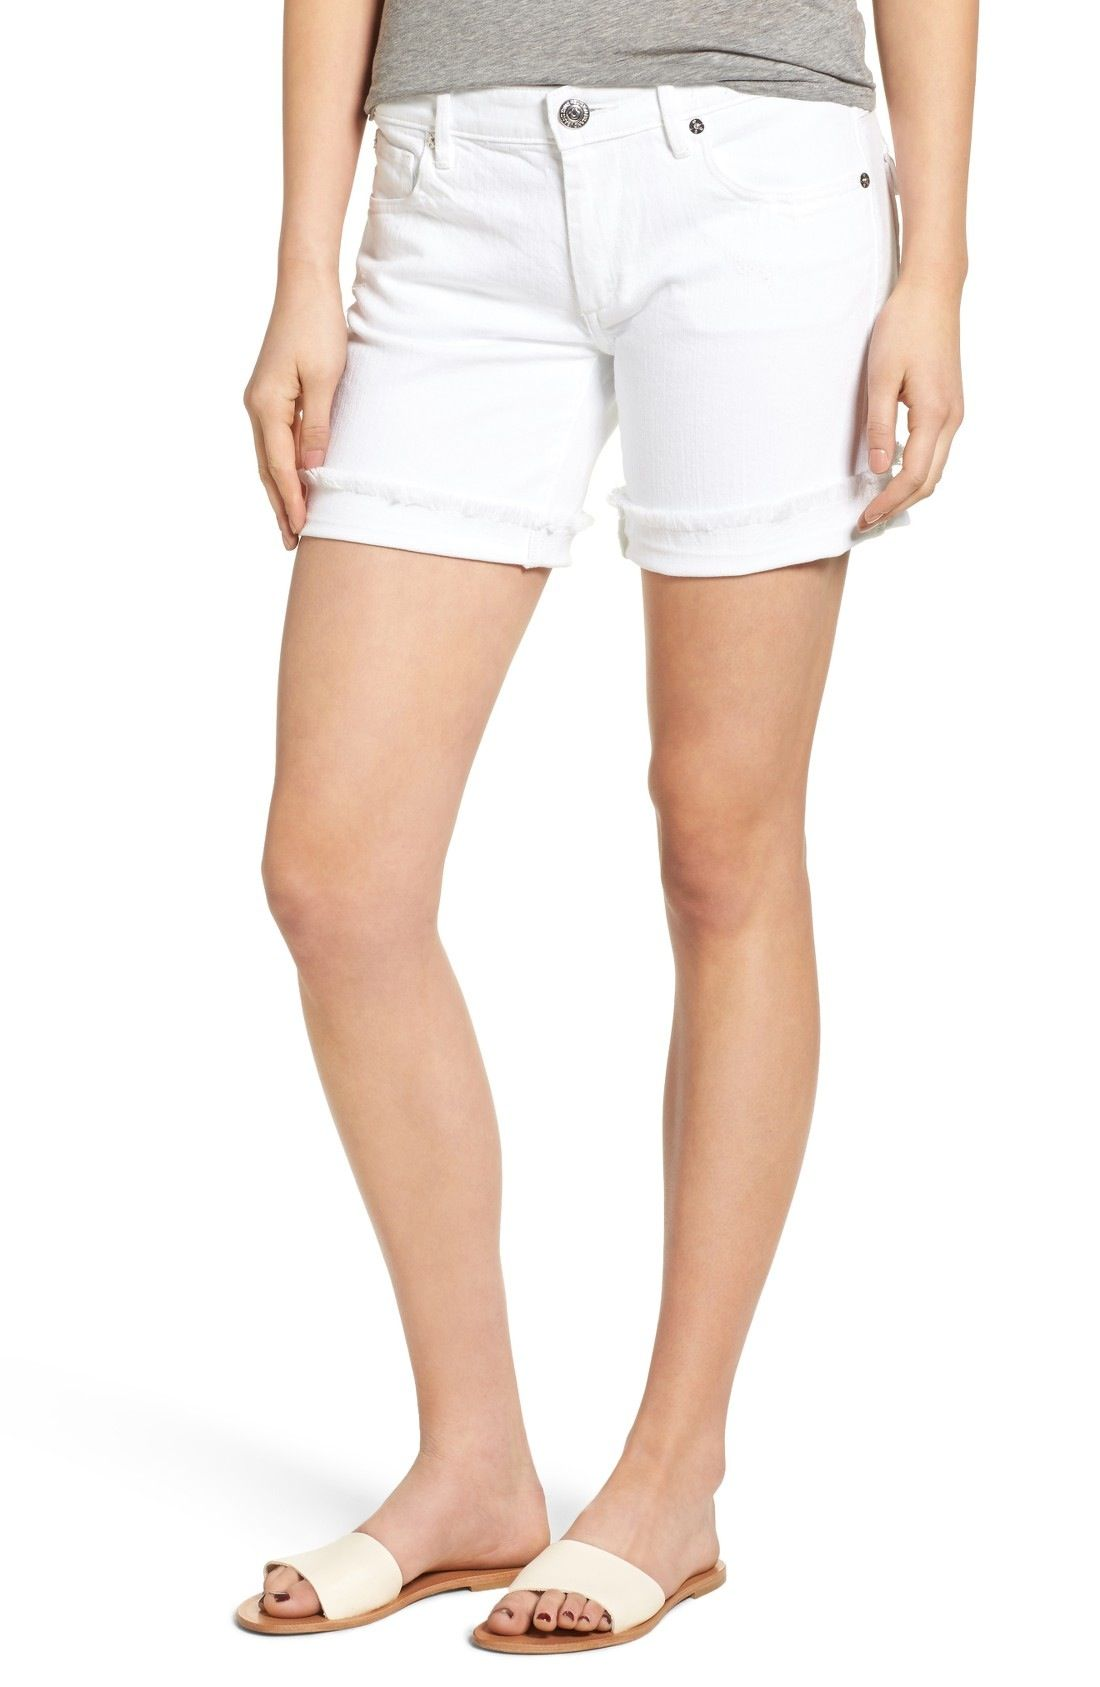 True Religion Brand Jeans Emma Bermuda Shorts (Optic White) available at #Nordstrom